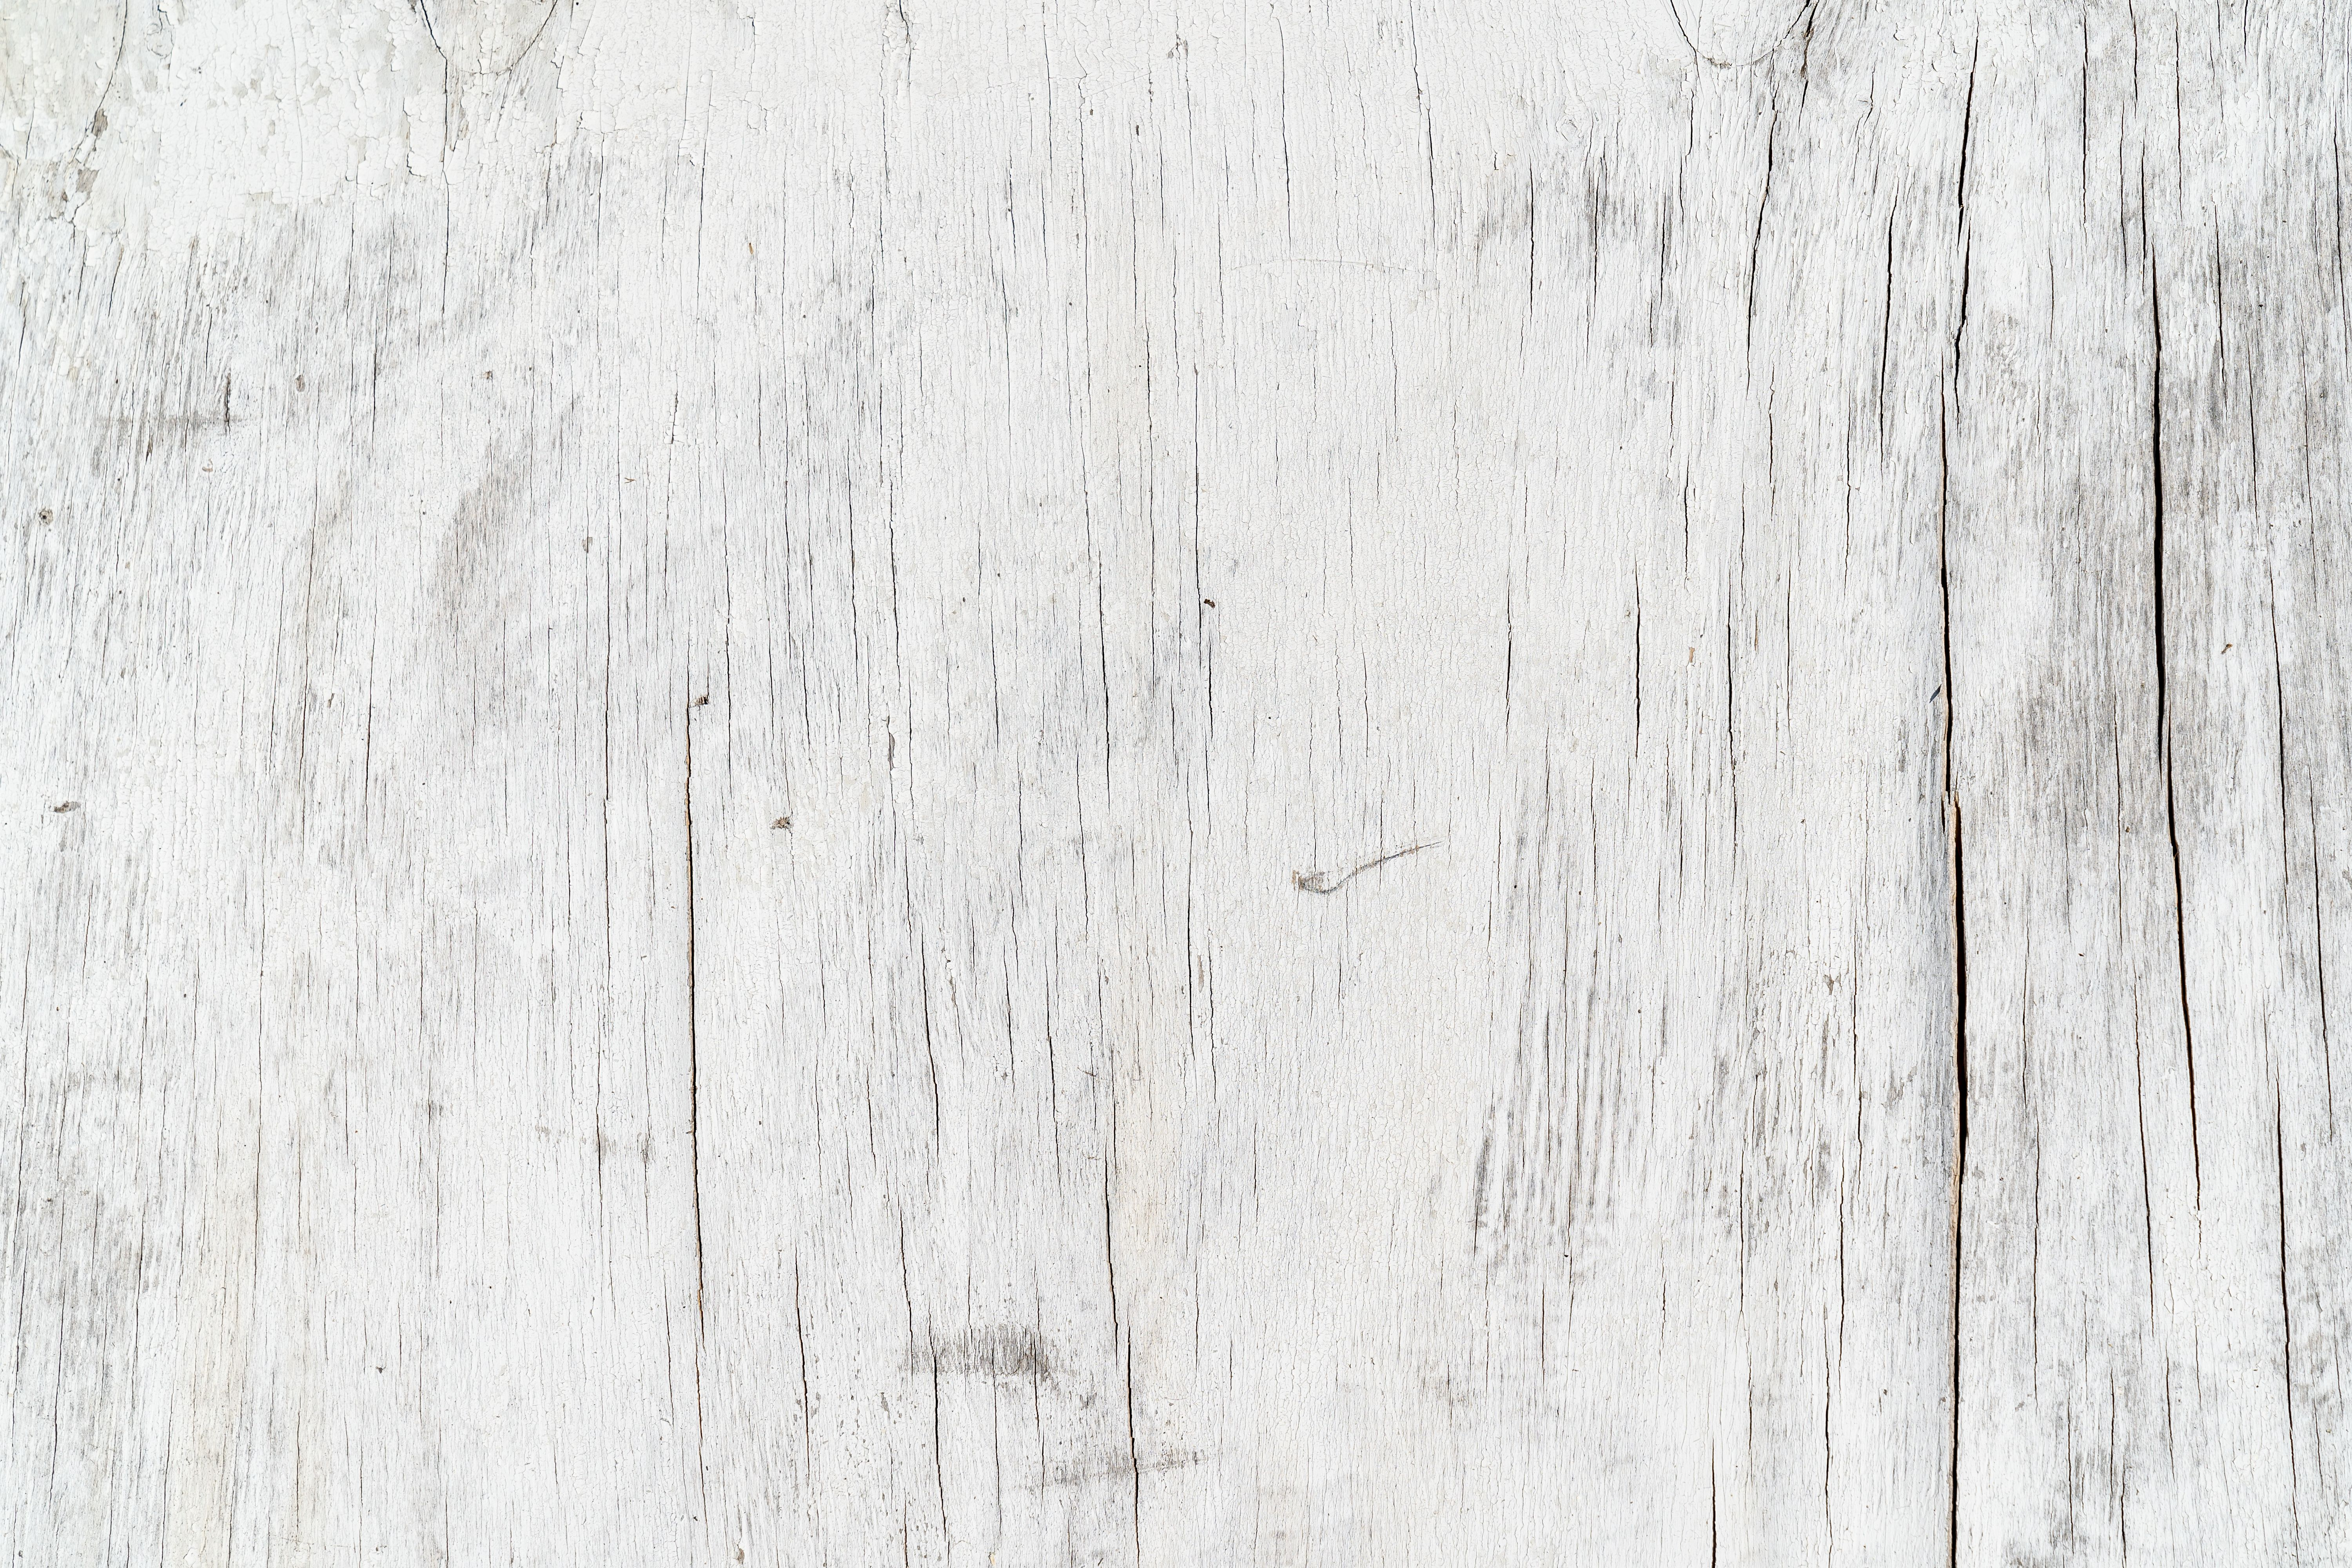 Old Wood Texture With White Peeling Paint In 2020 Textured Background Old Wood Texture Wooden Textures